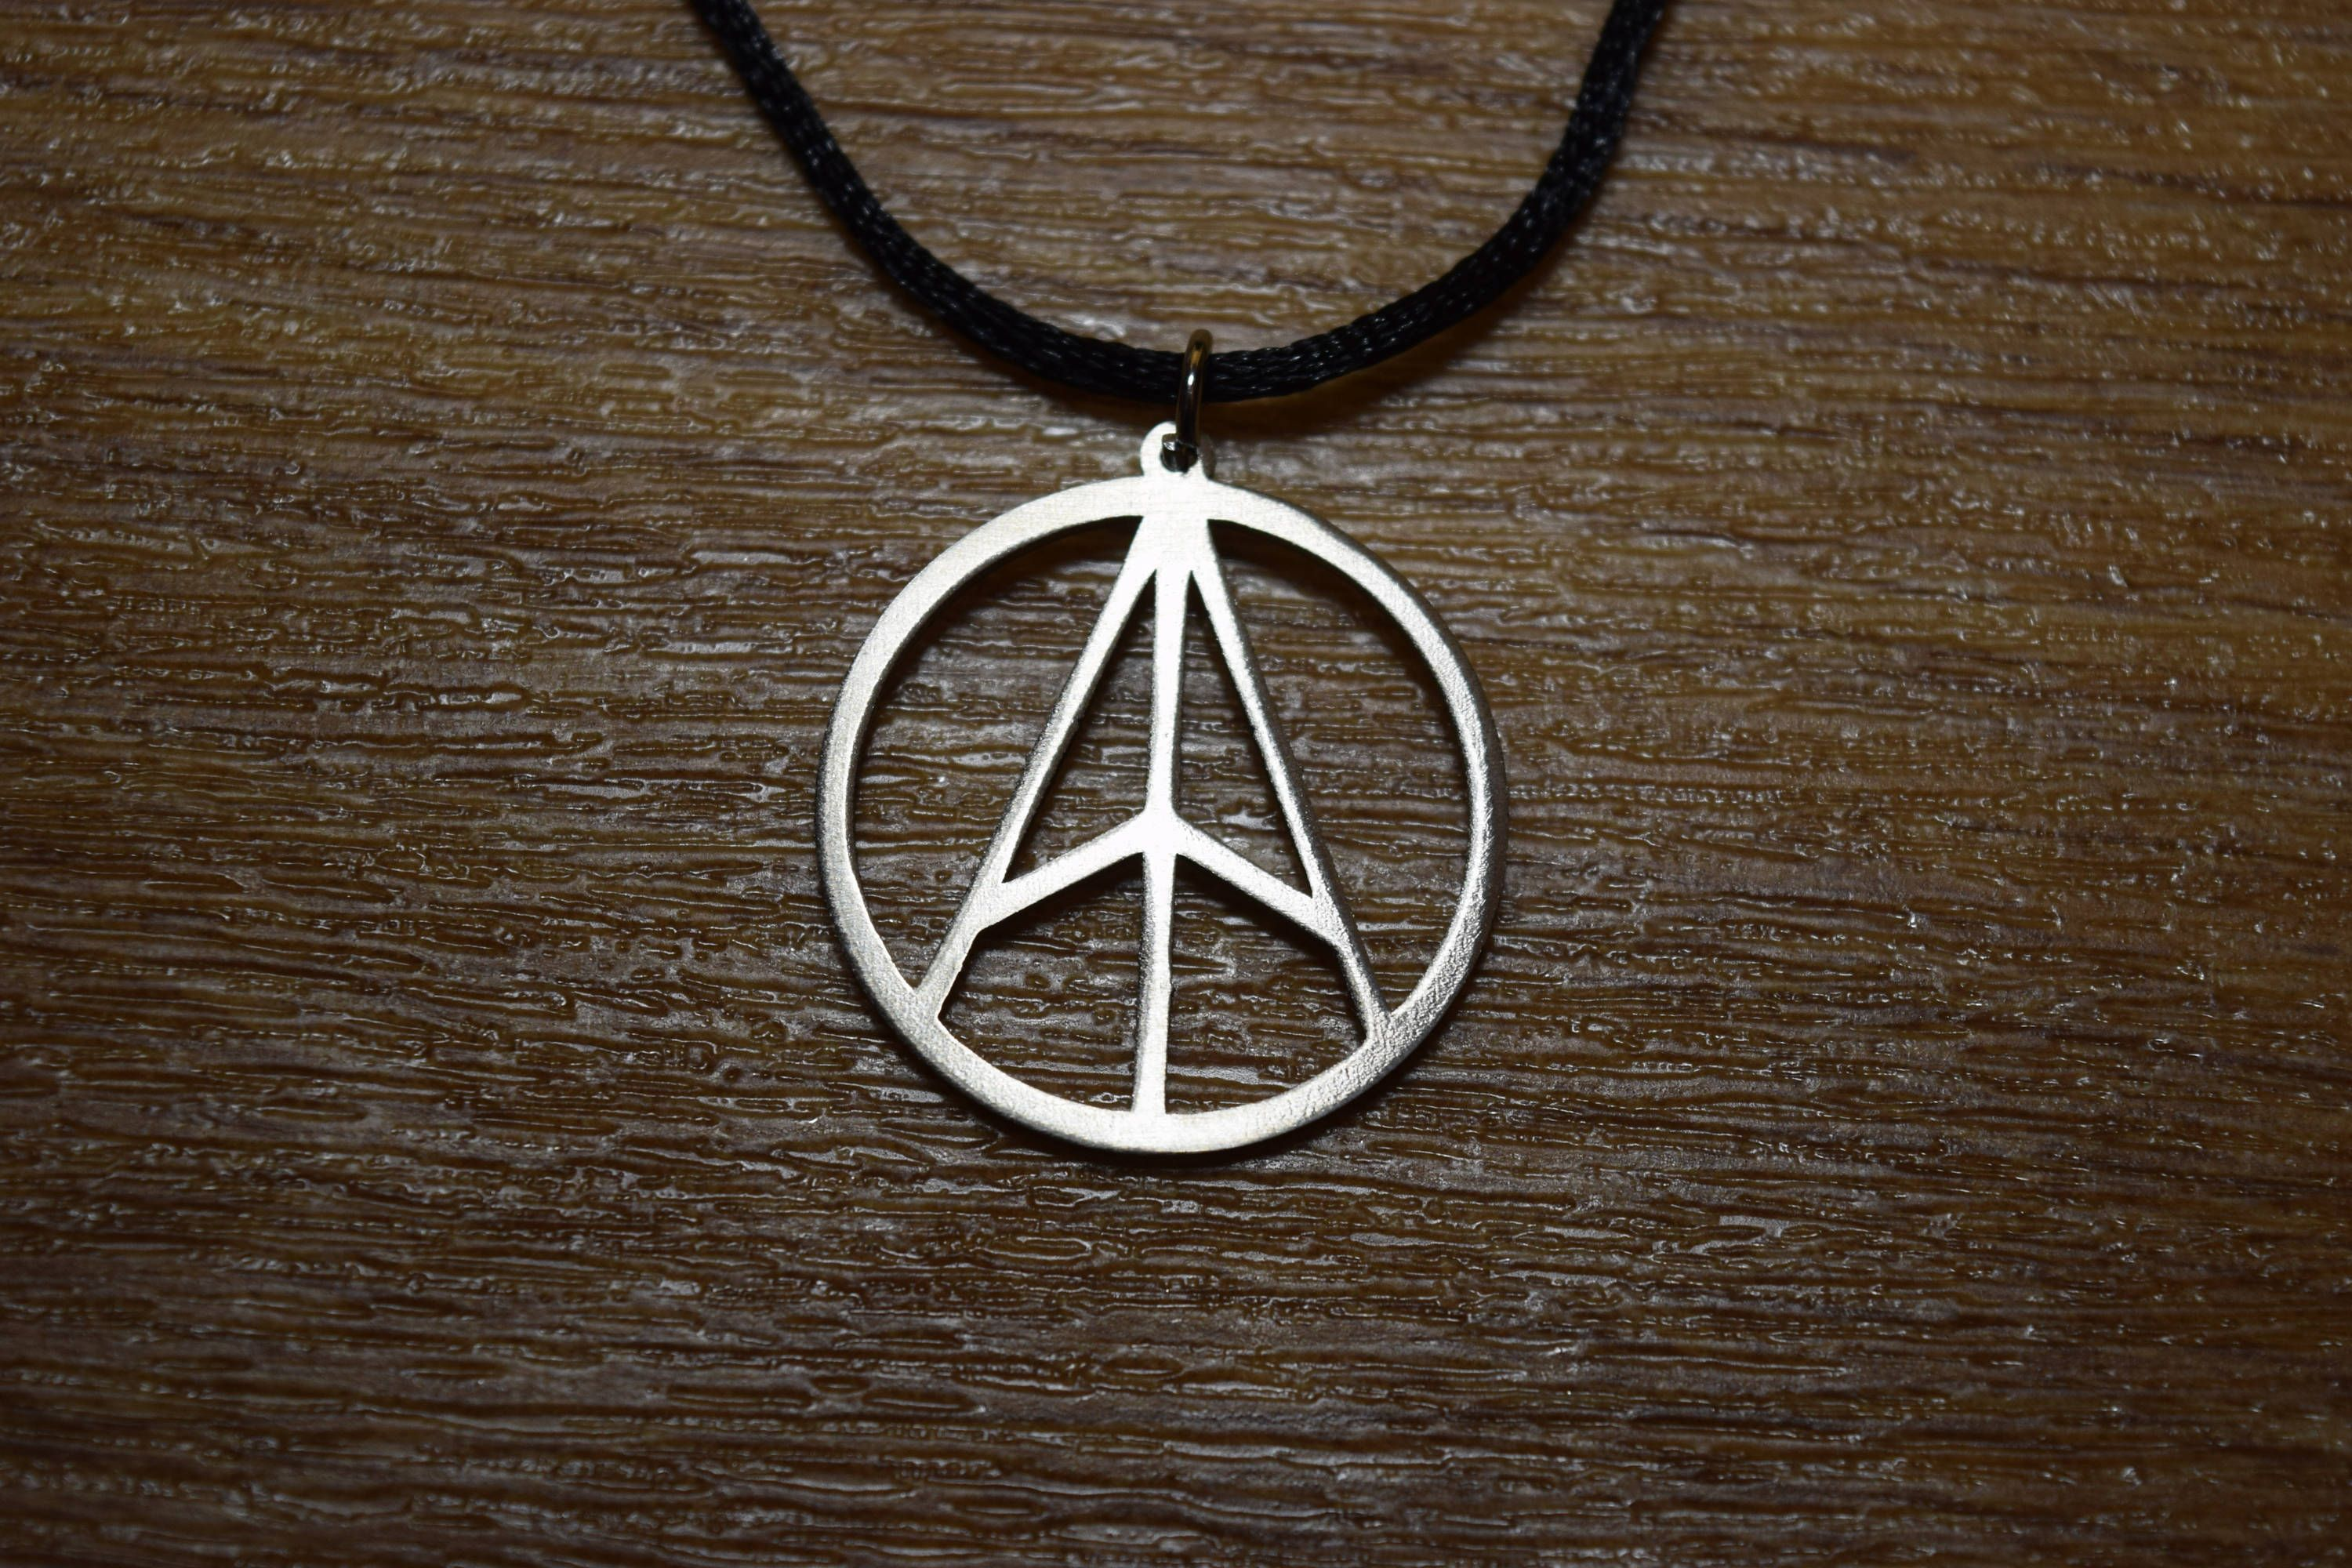 Anarcho Pacifism Necklace Anarcho Anarchy Cross Logo Necklace